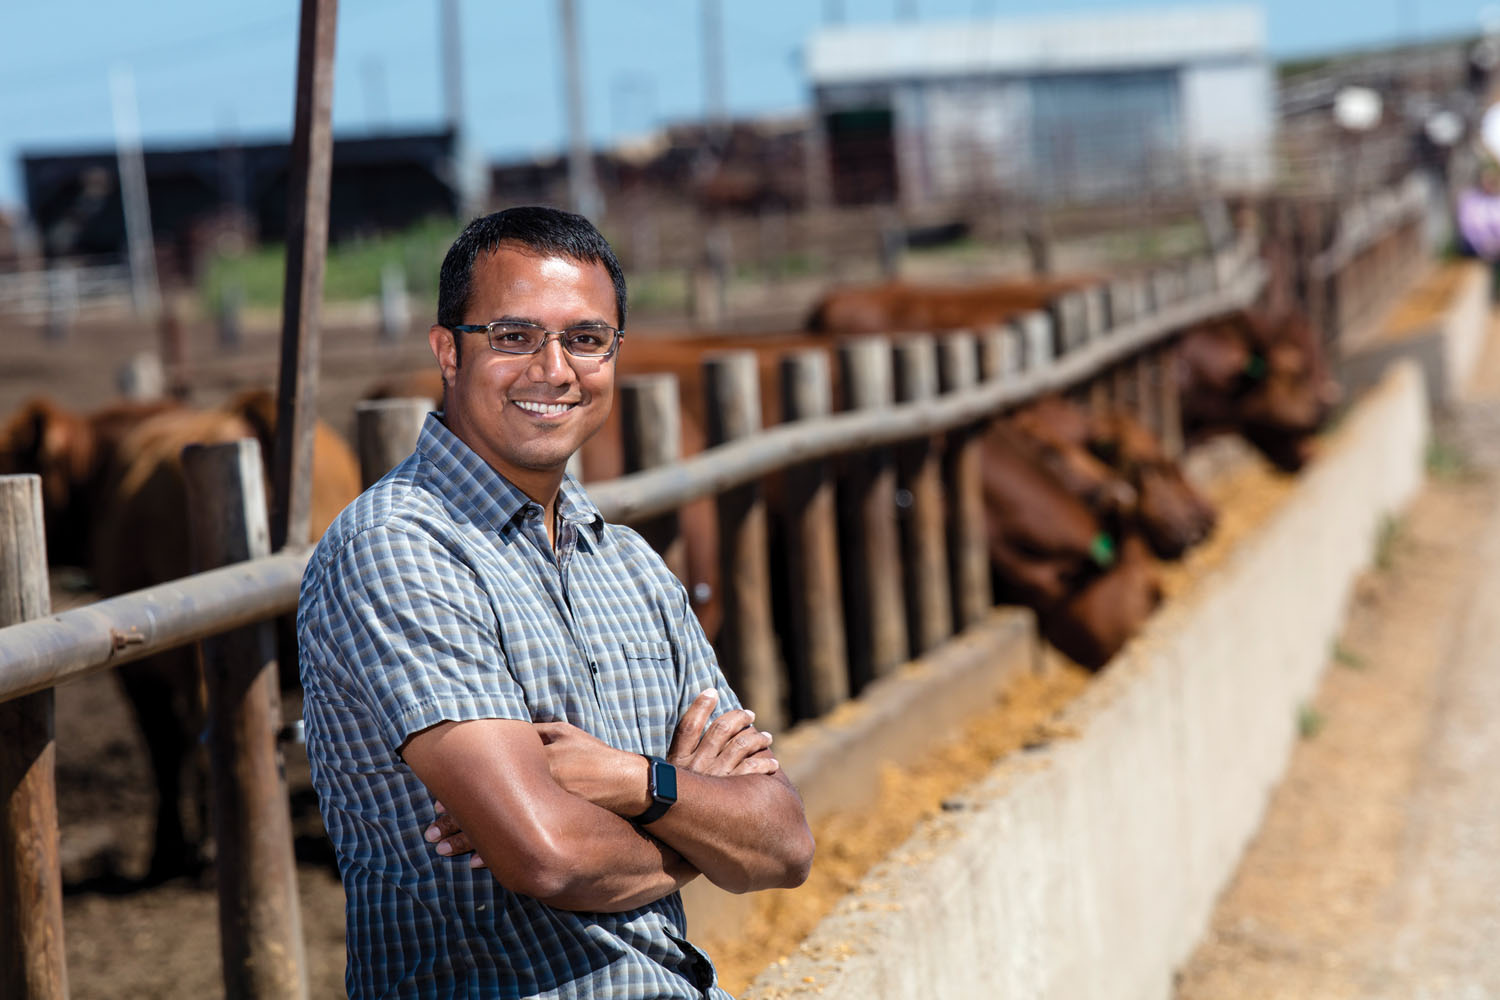 Vishal Singh and his start up company are using telemetric ear tags on cattle to transmit their health back to a central computer. They are testing the tags on cattle at Midwest Feeding Company, Milford, NE. July 31, 2015. Photo by Craig Chandler/University Communications